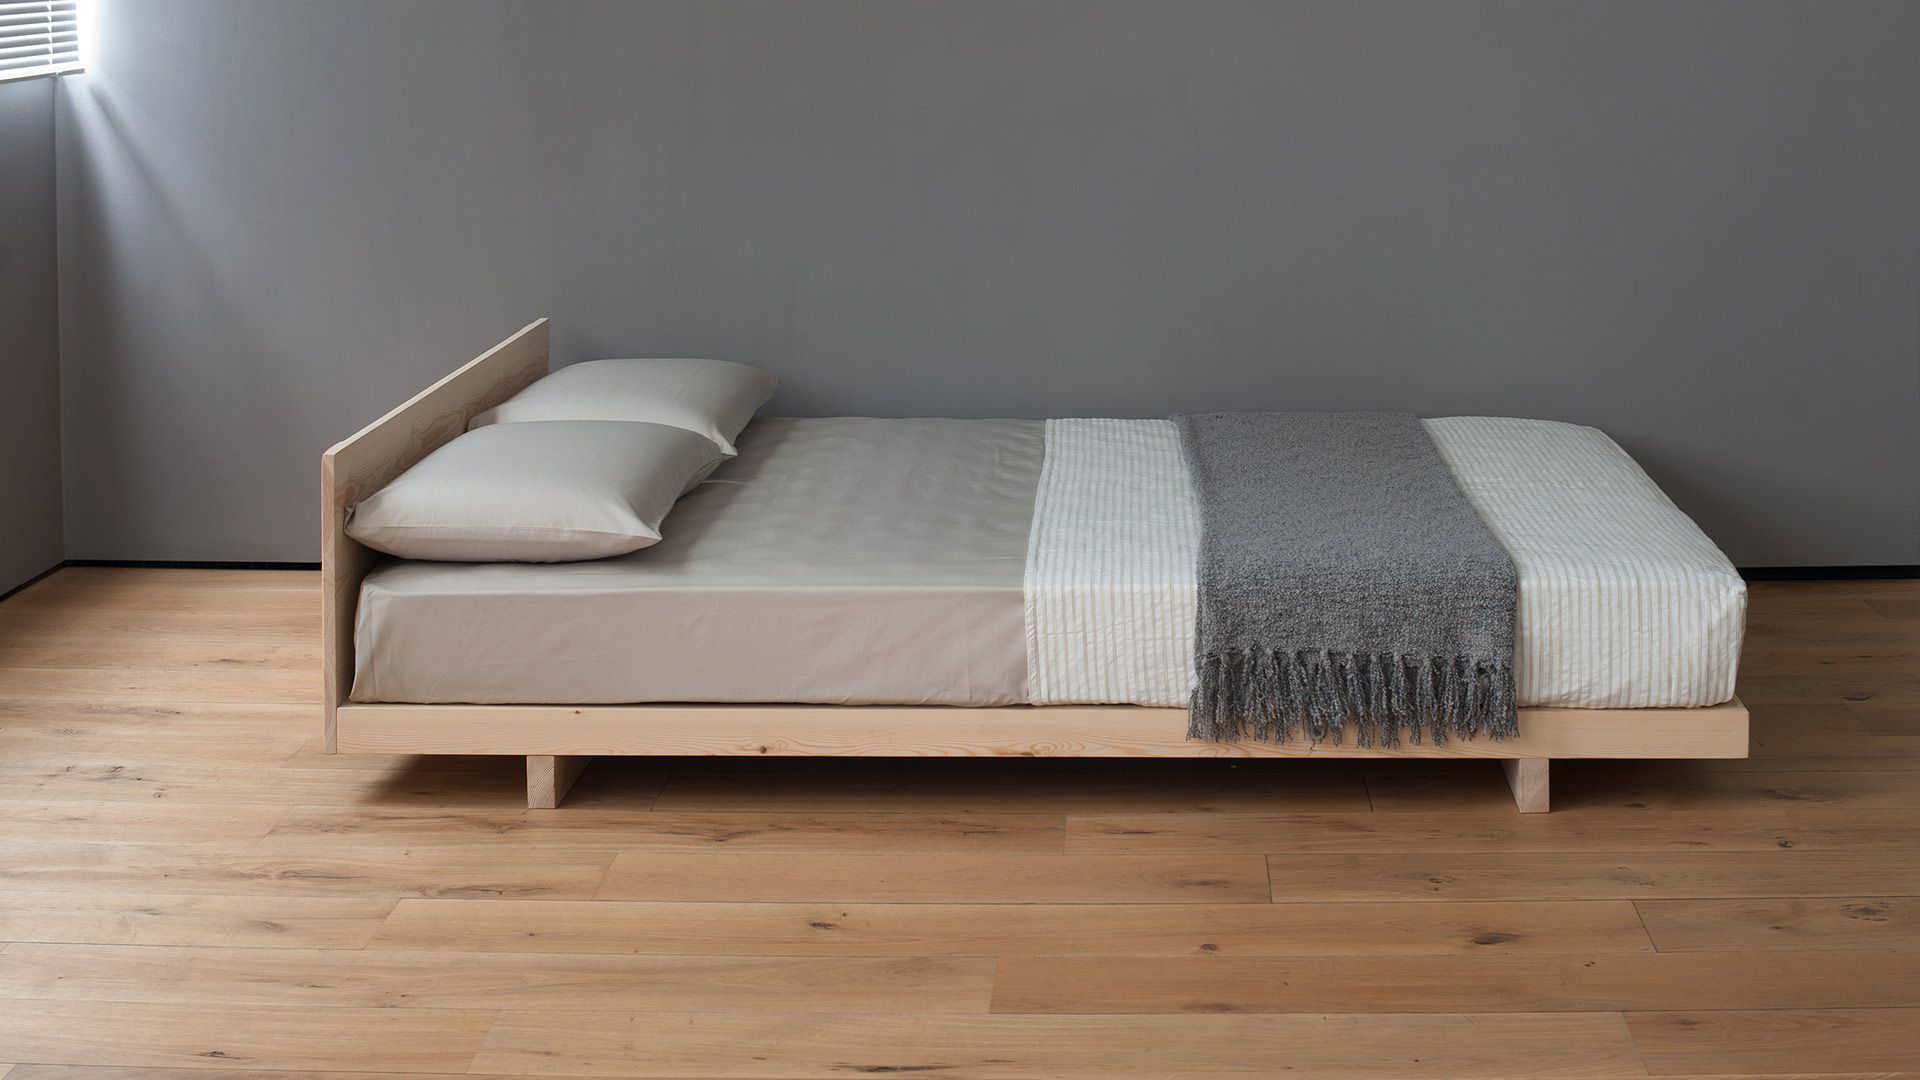 Kobe Japanese Bed With Headboard 인테리어 가구 침실